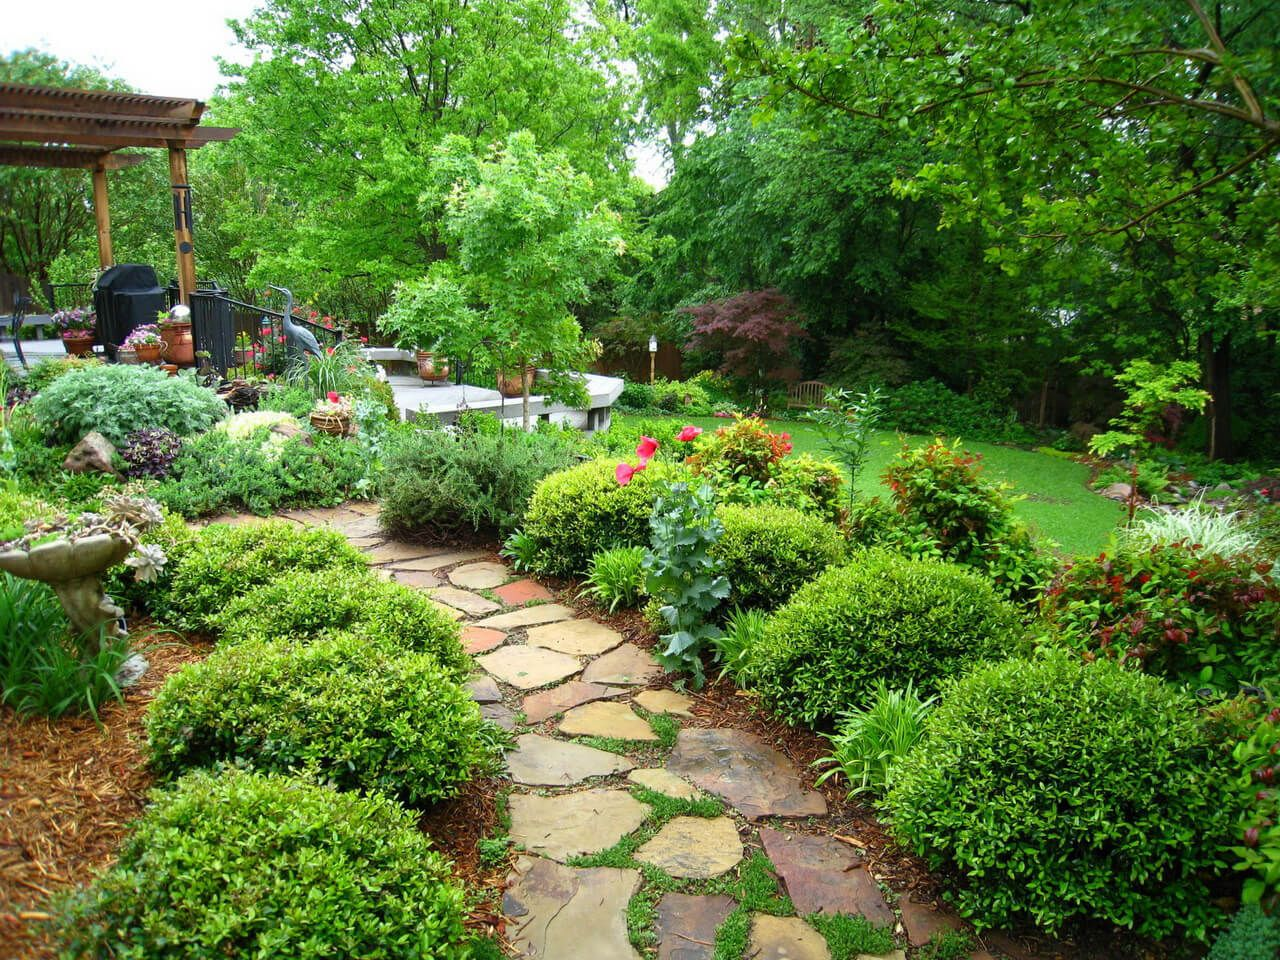 Gartenweggestaltung Planting The Perfect Landscape Ottawa Homes Need | Robert